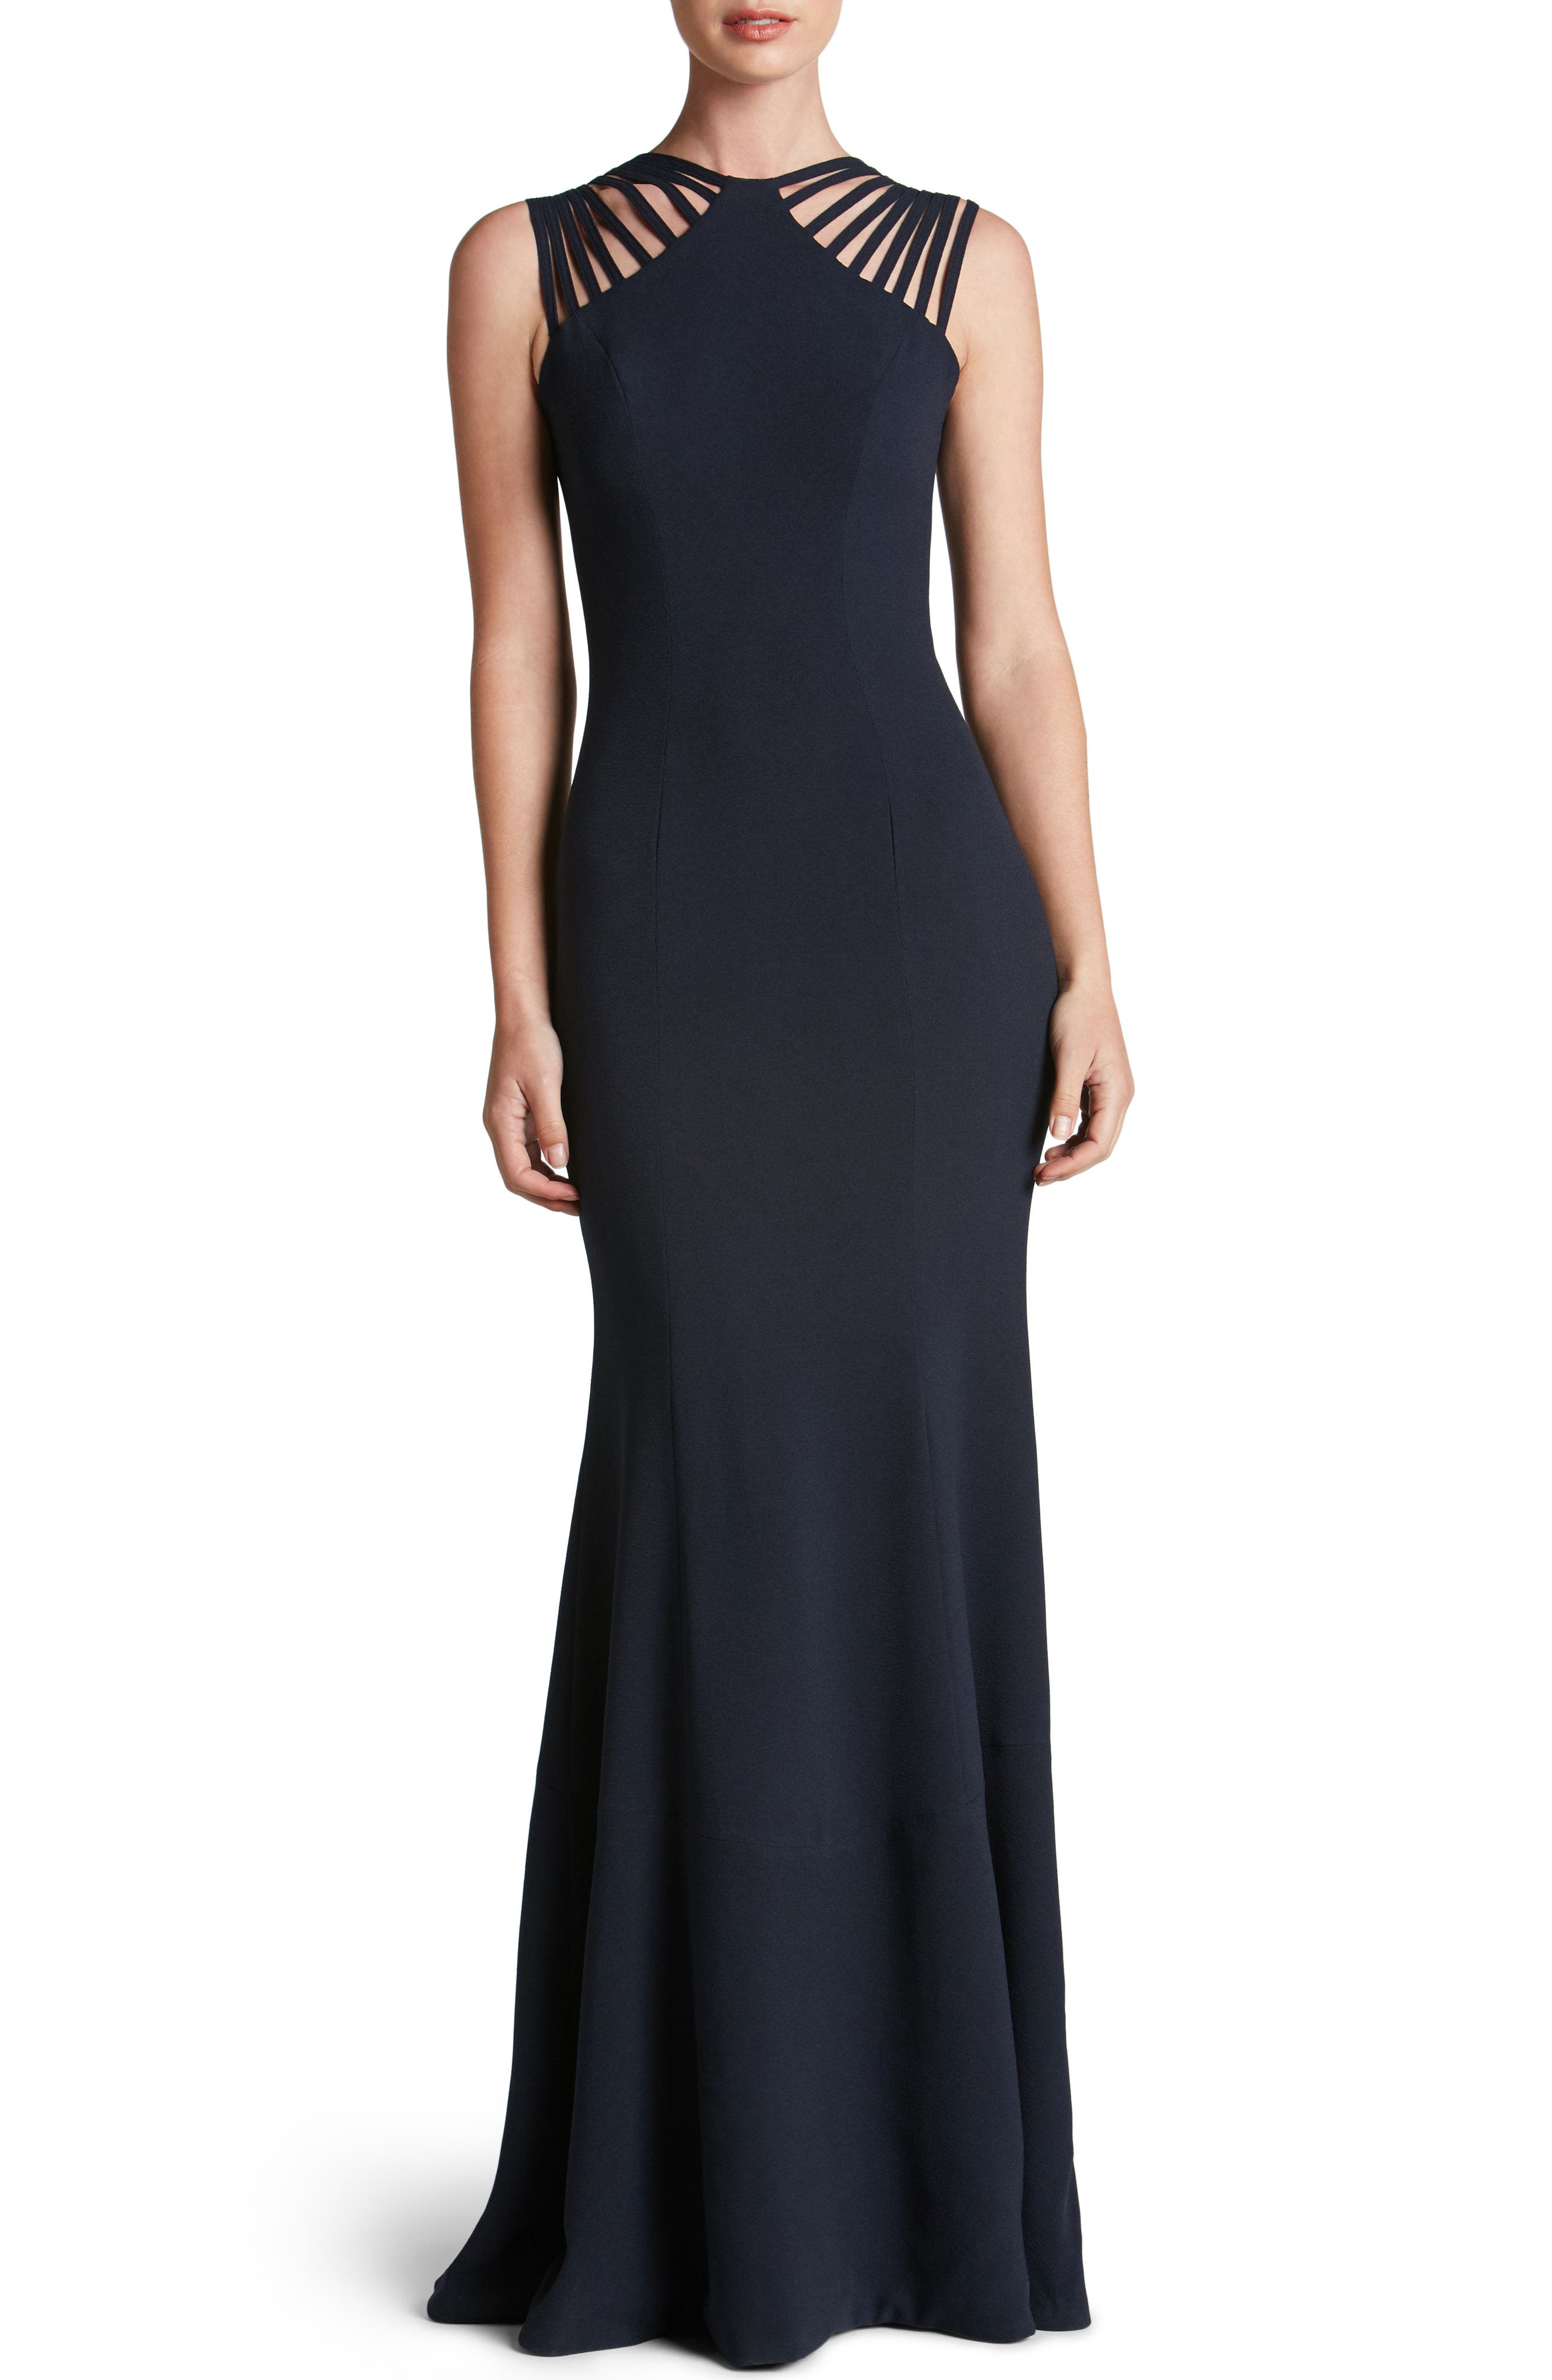 Harlow Crepe Gown,                             Main thumbnail 1, color,                             Navy